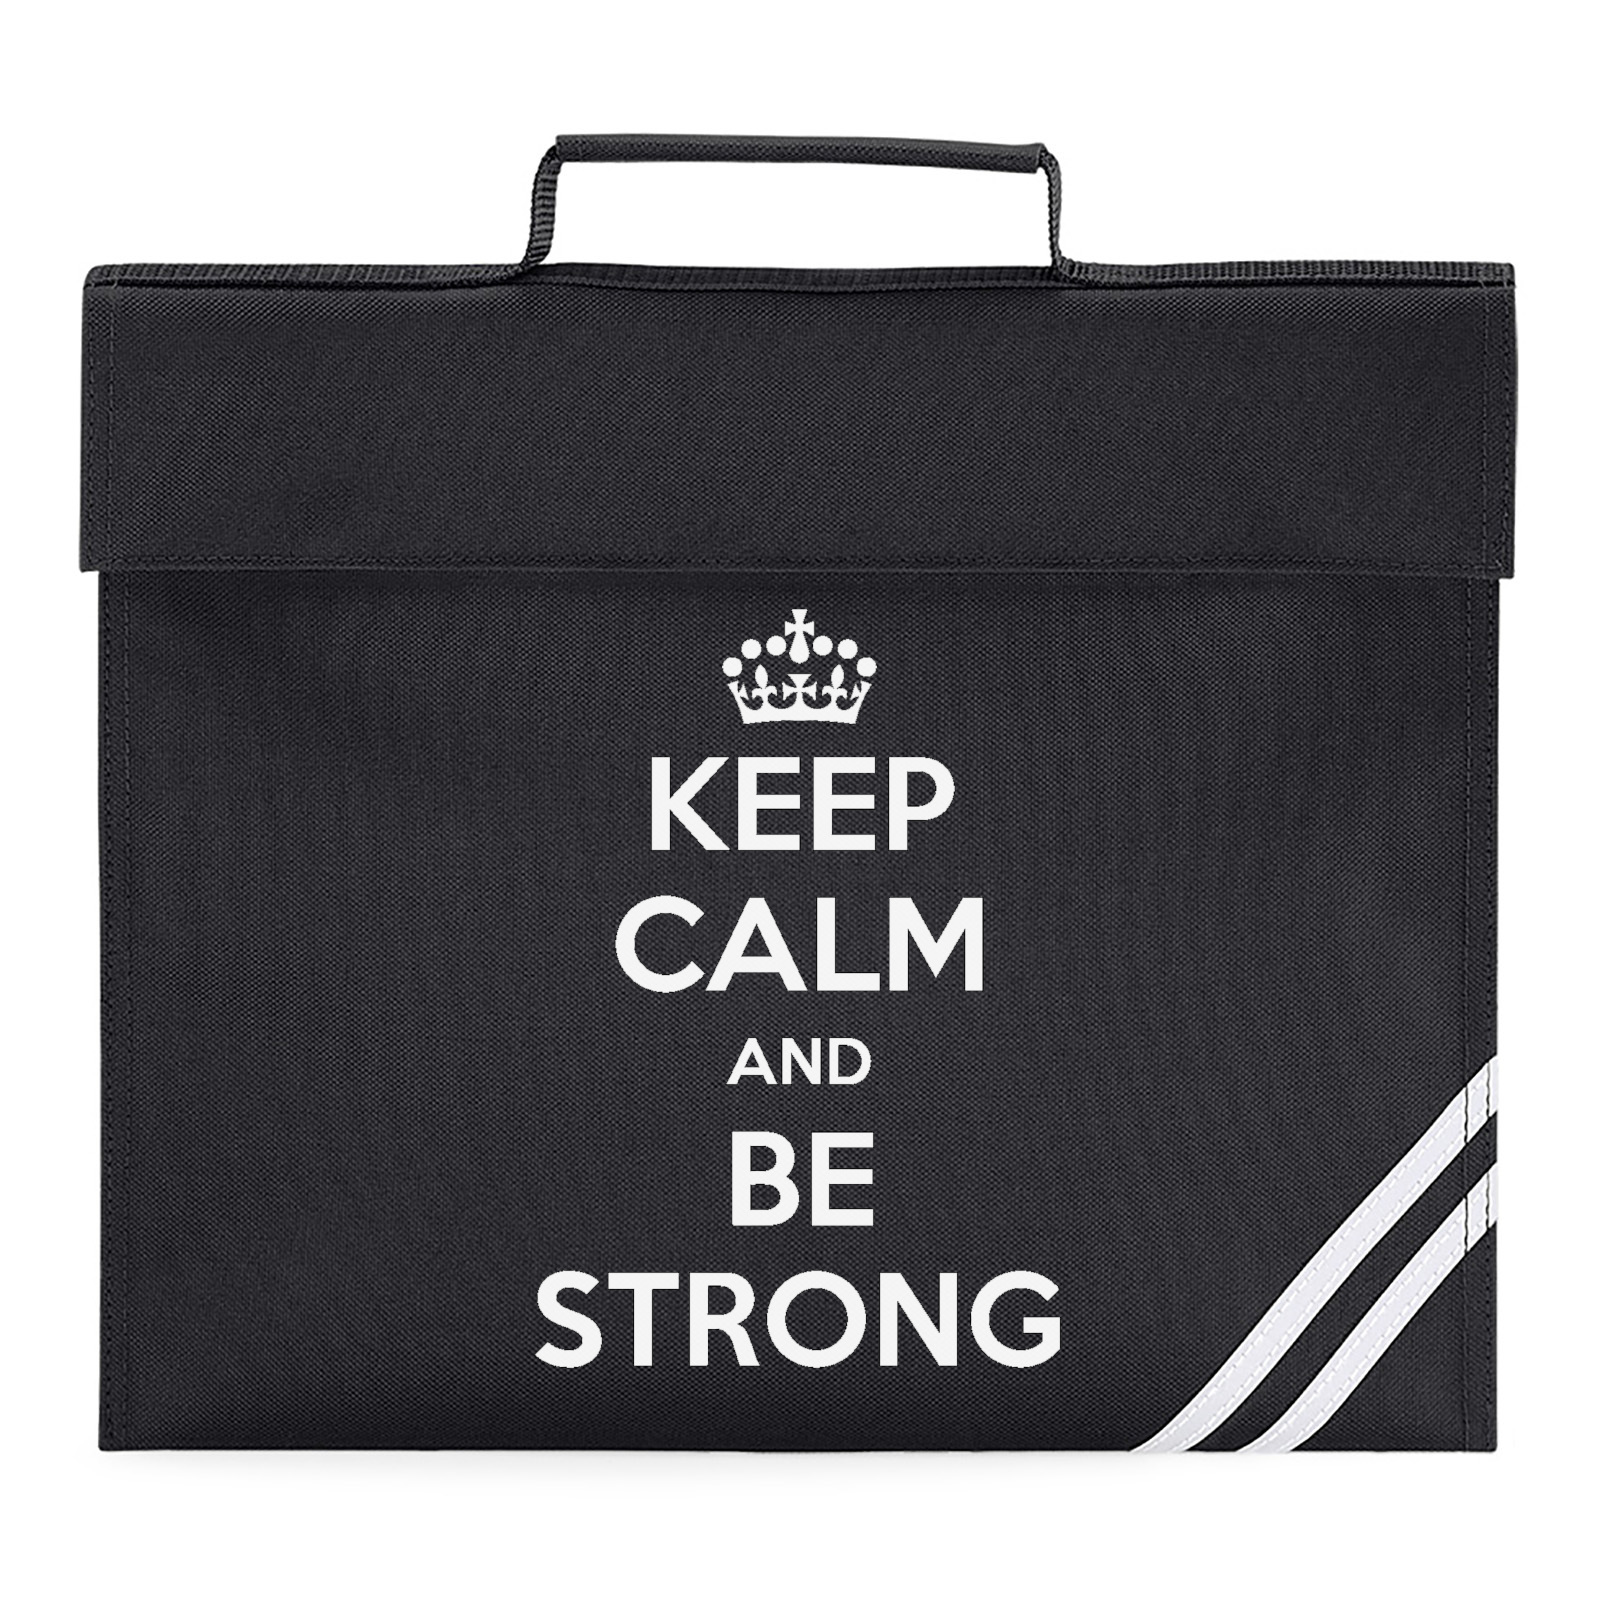 Picture Of Keep Calm And Be Strong Book Bag